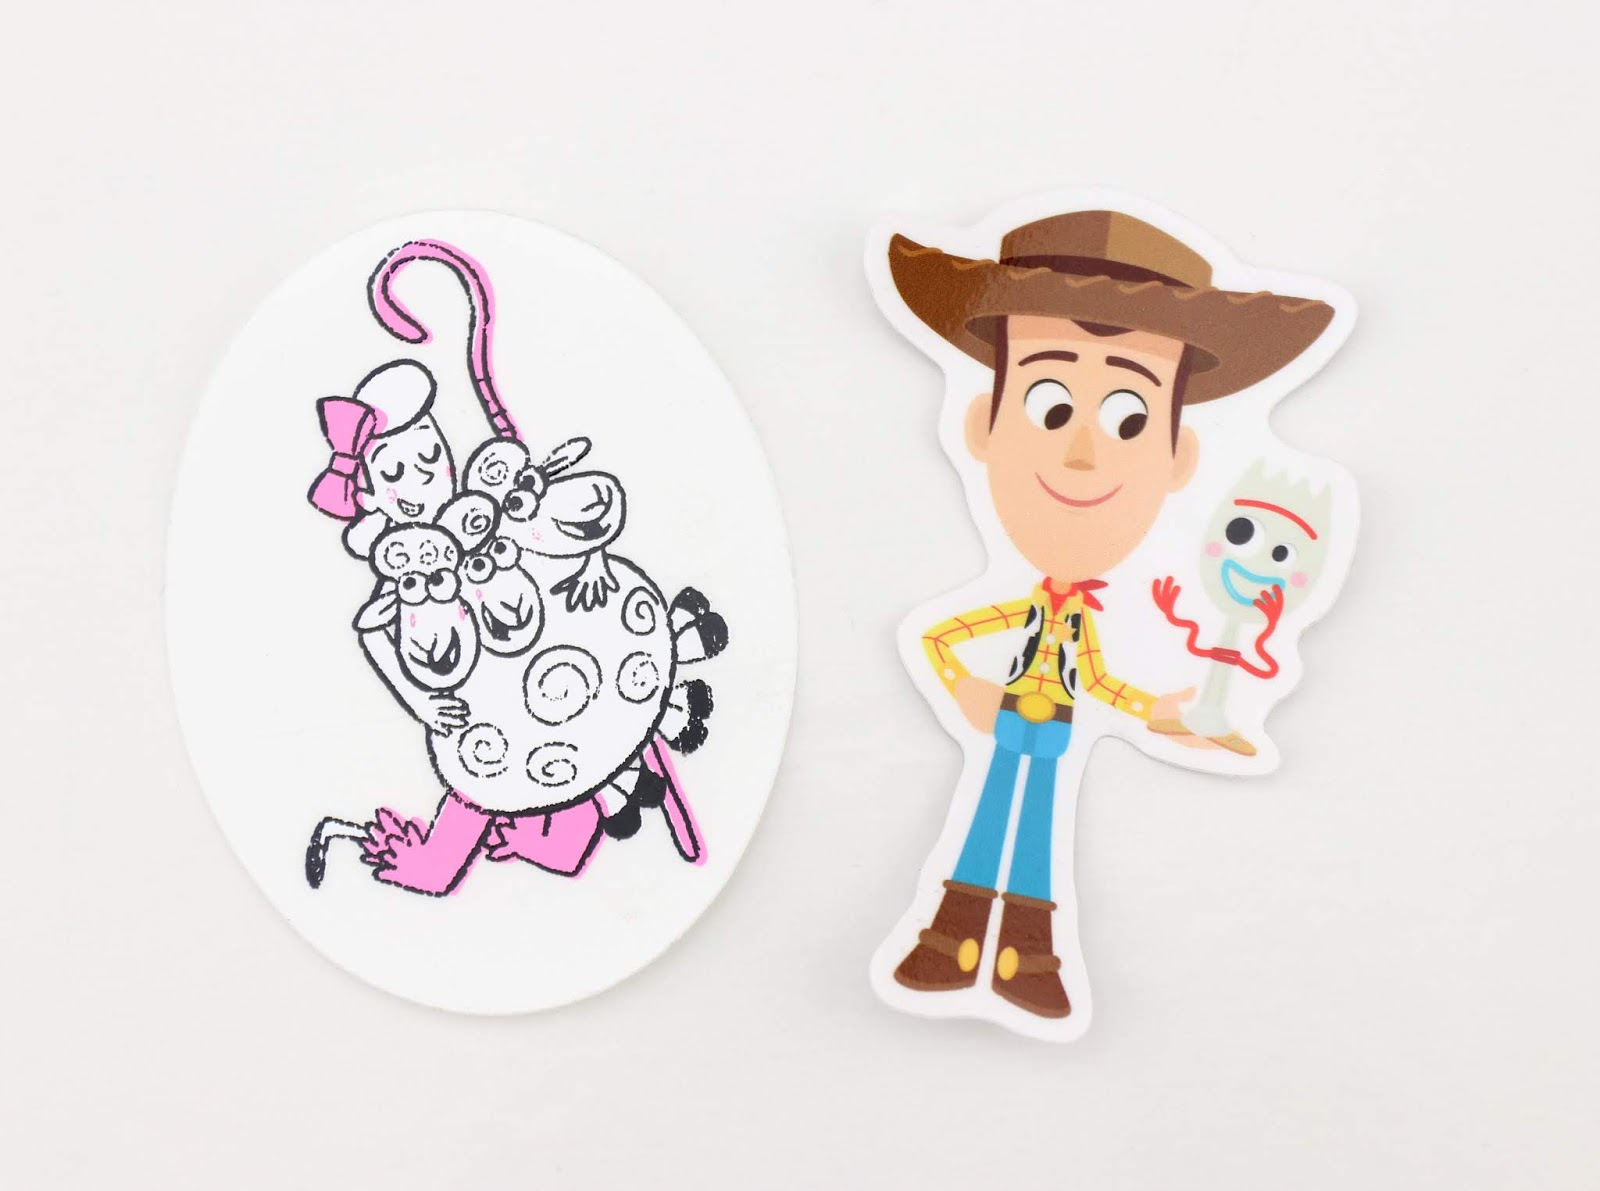 toy story 4 stickers jerrod mauyama